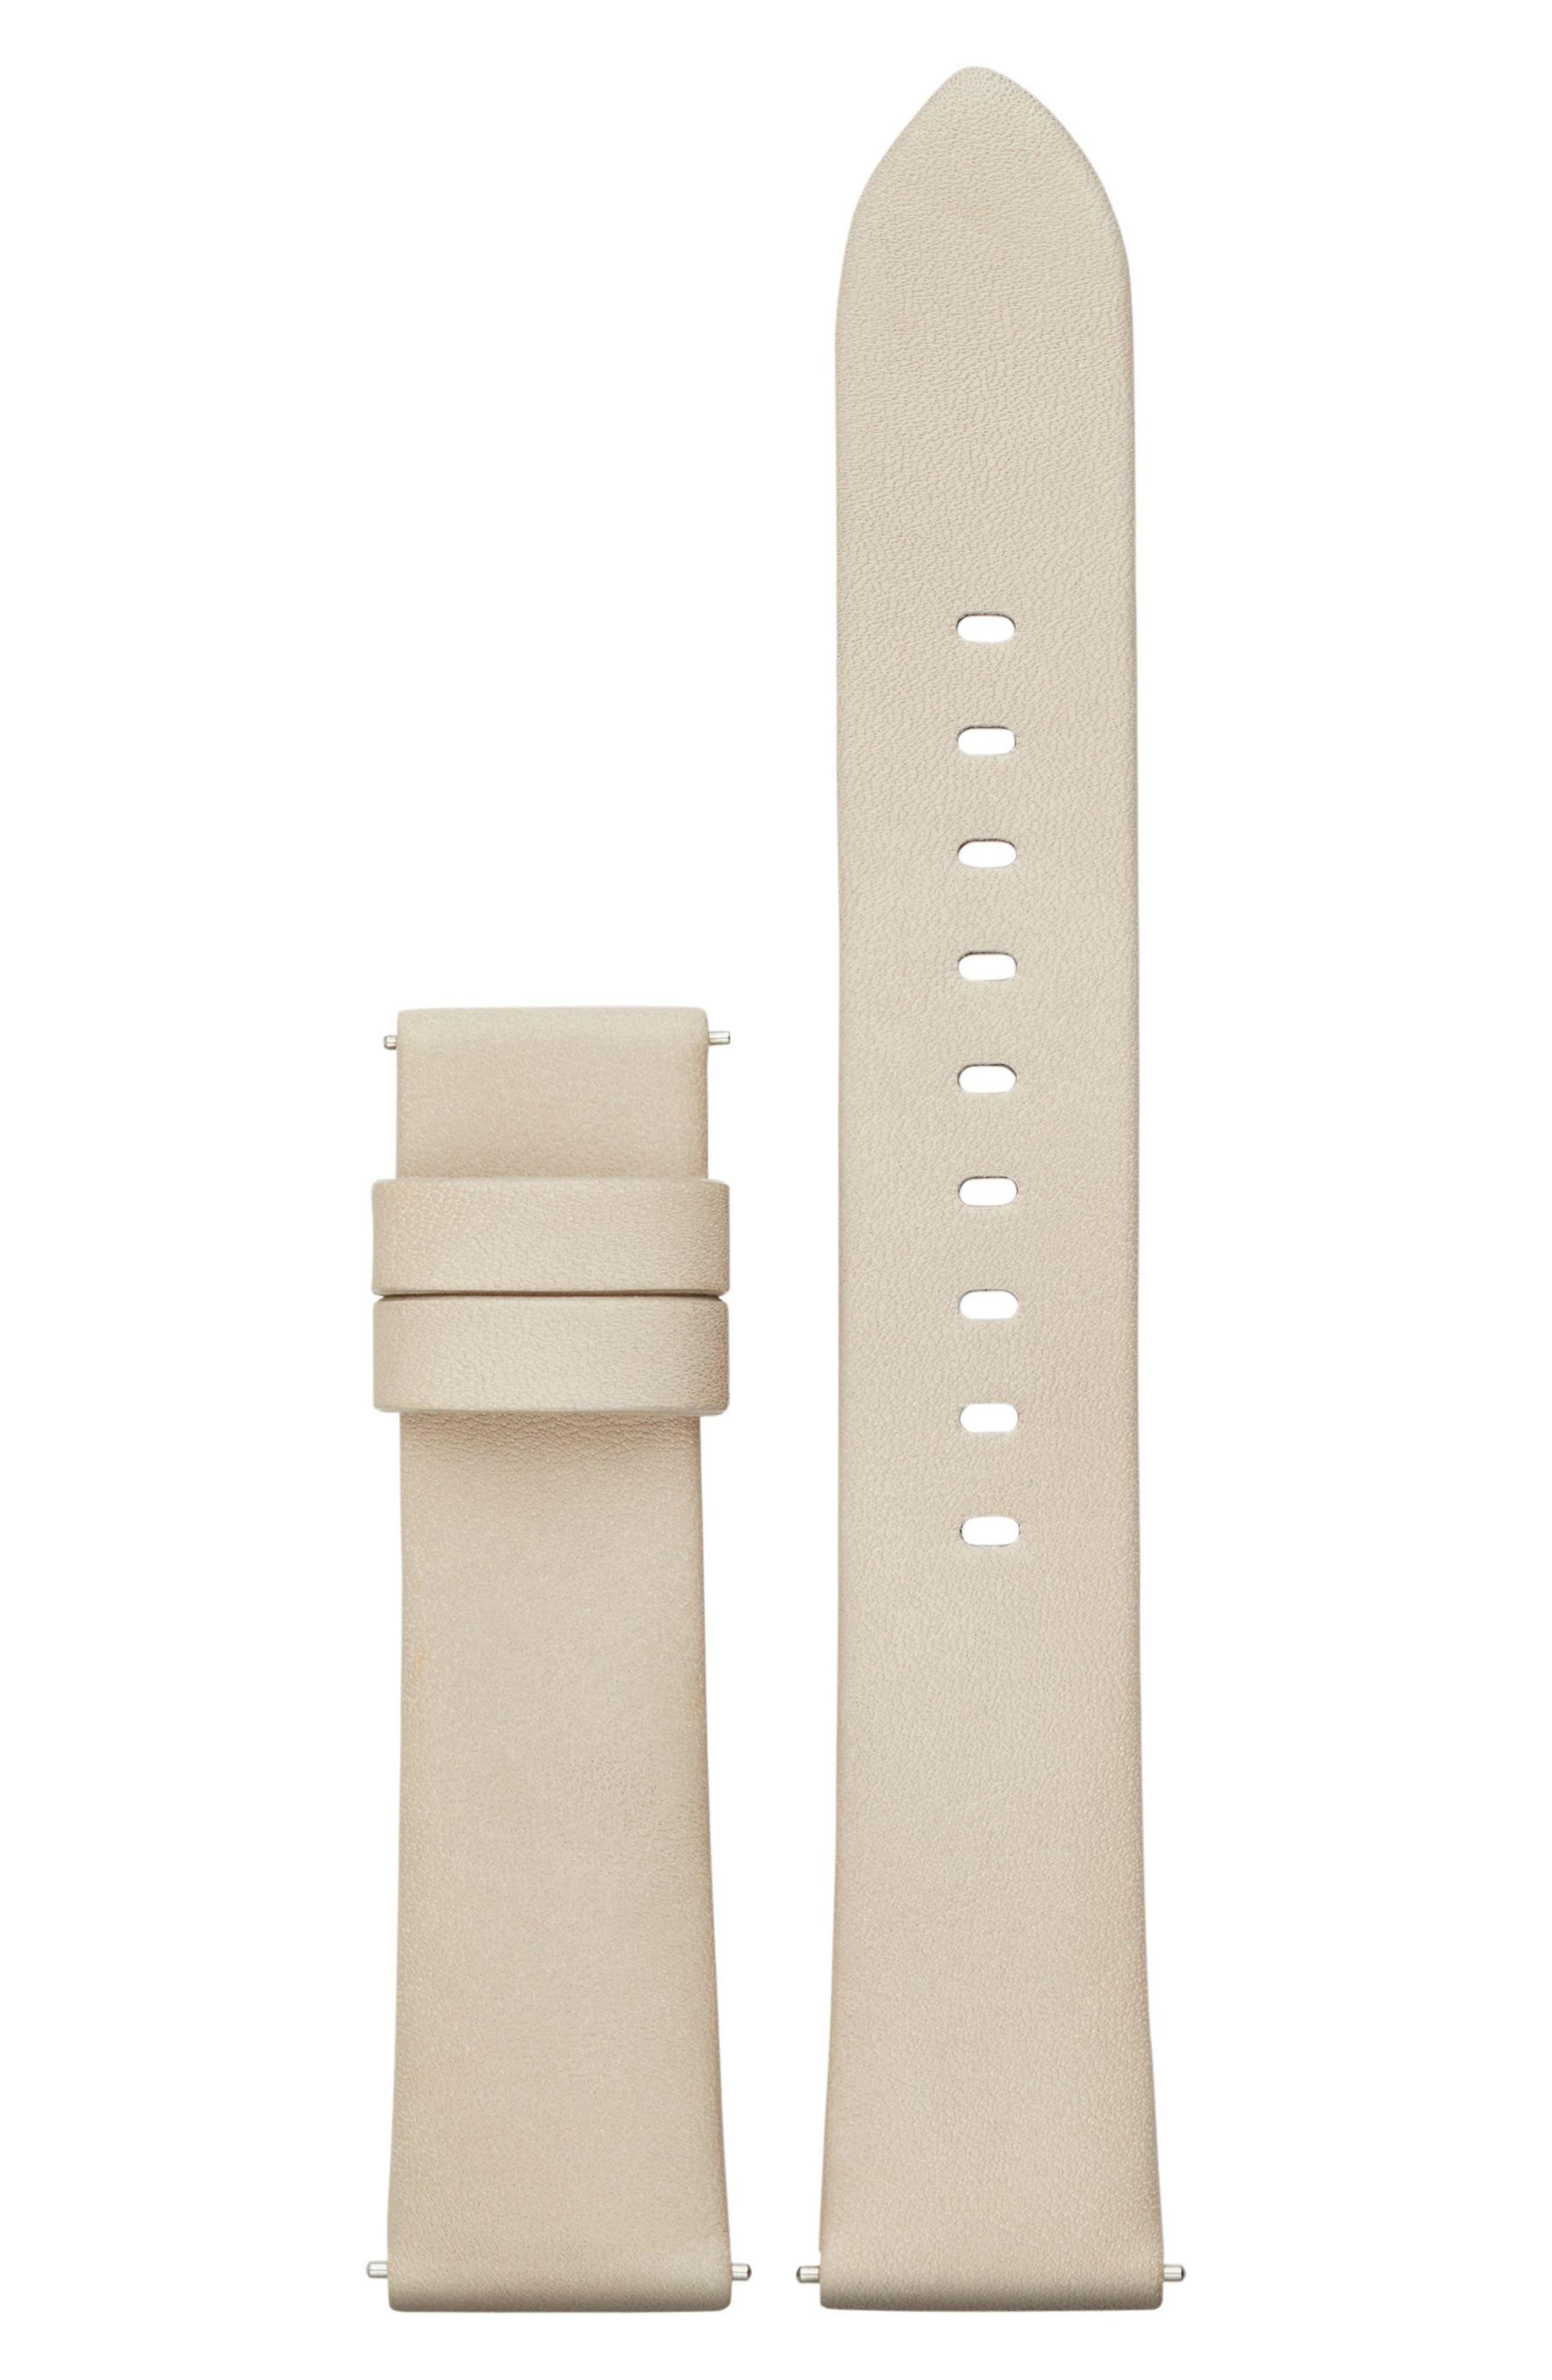 MICHAEL KORS ACCESS Sofie 18Mm Leather Watch Strap in Putty